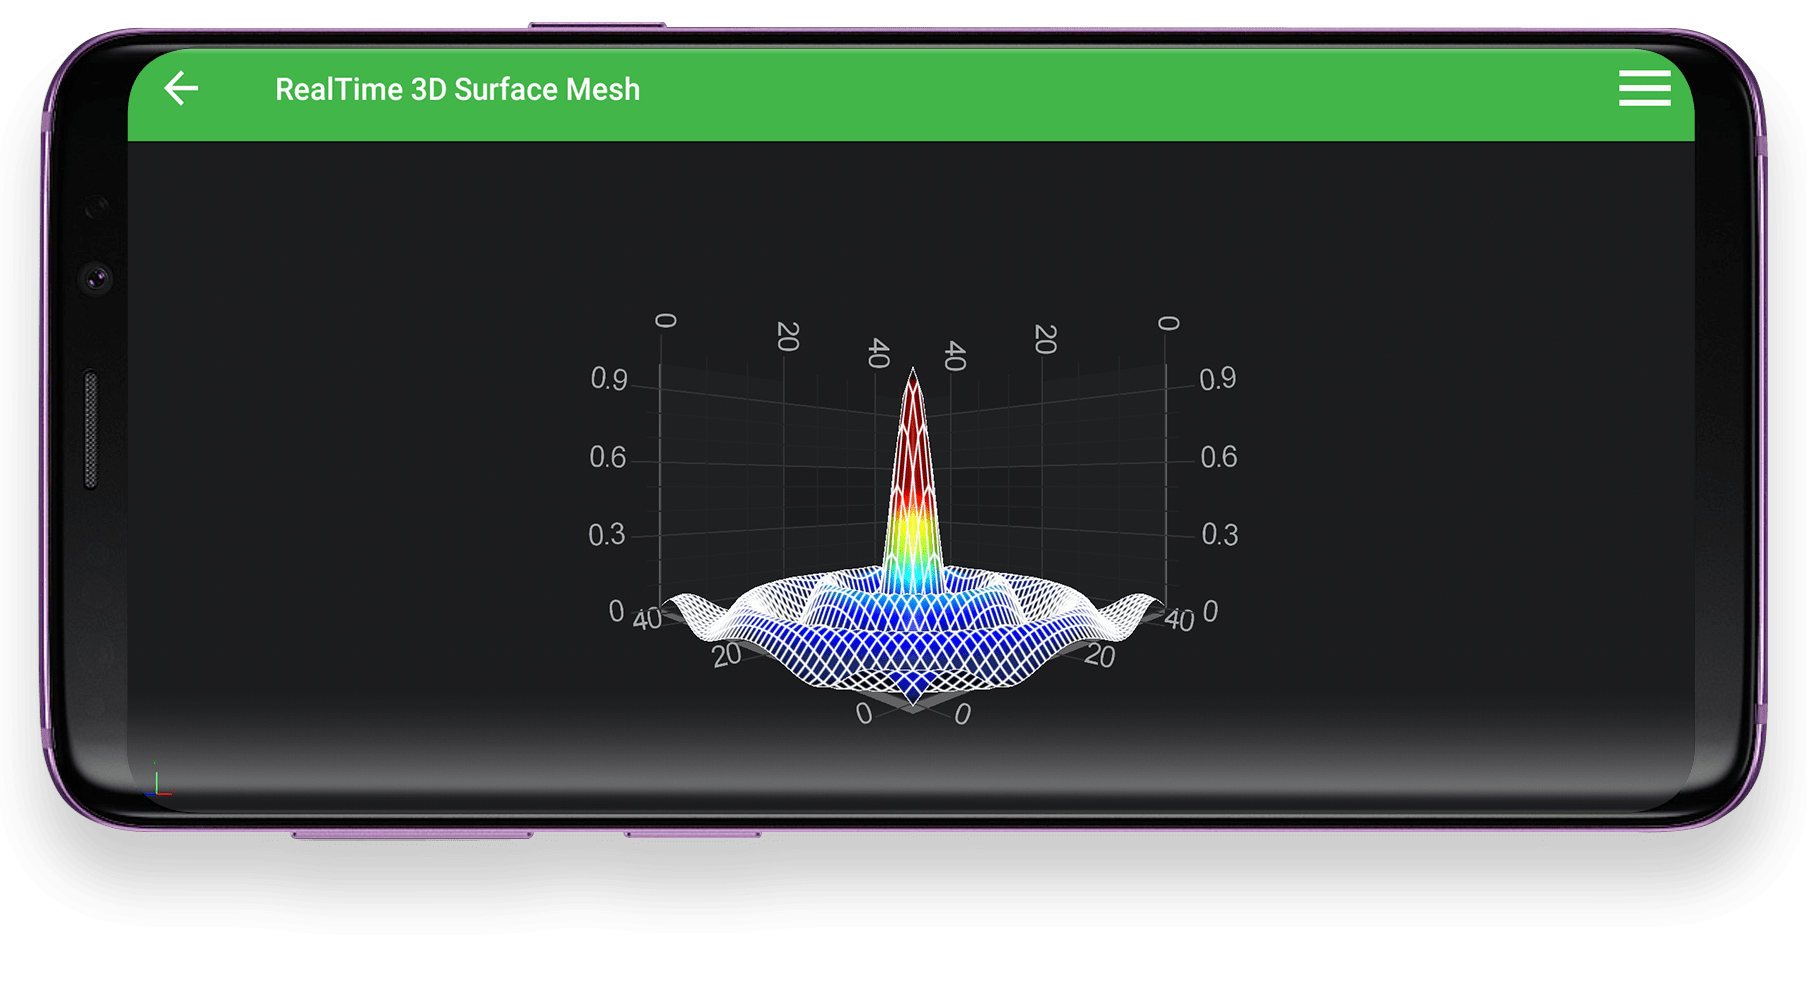 Android Realtime 3D Surface Mesh Example